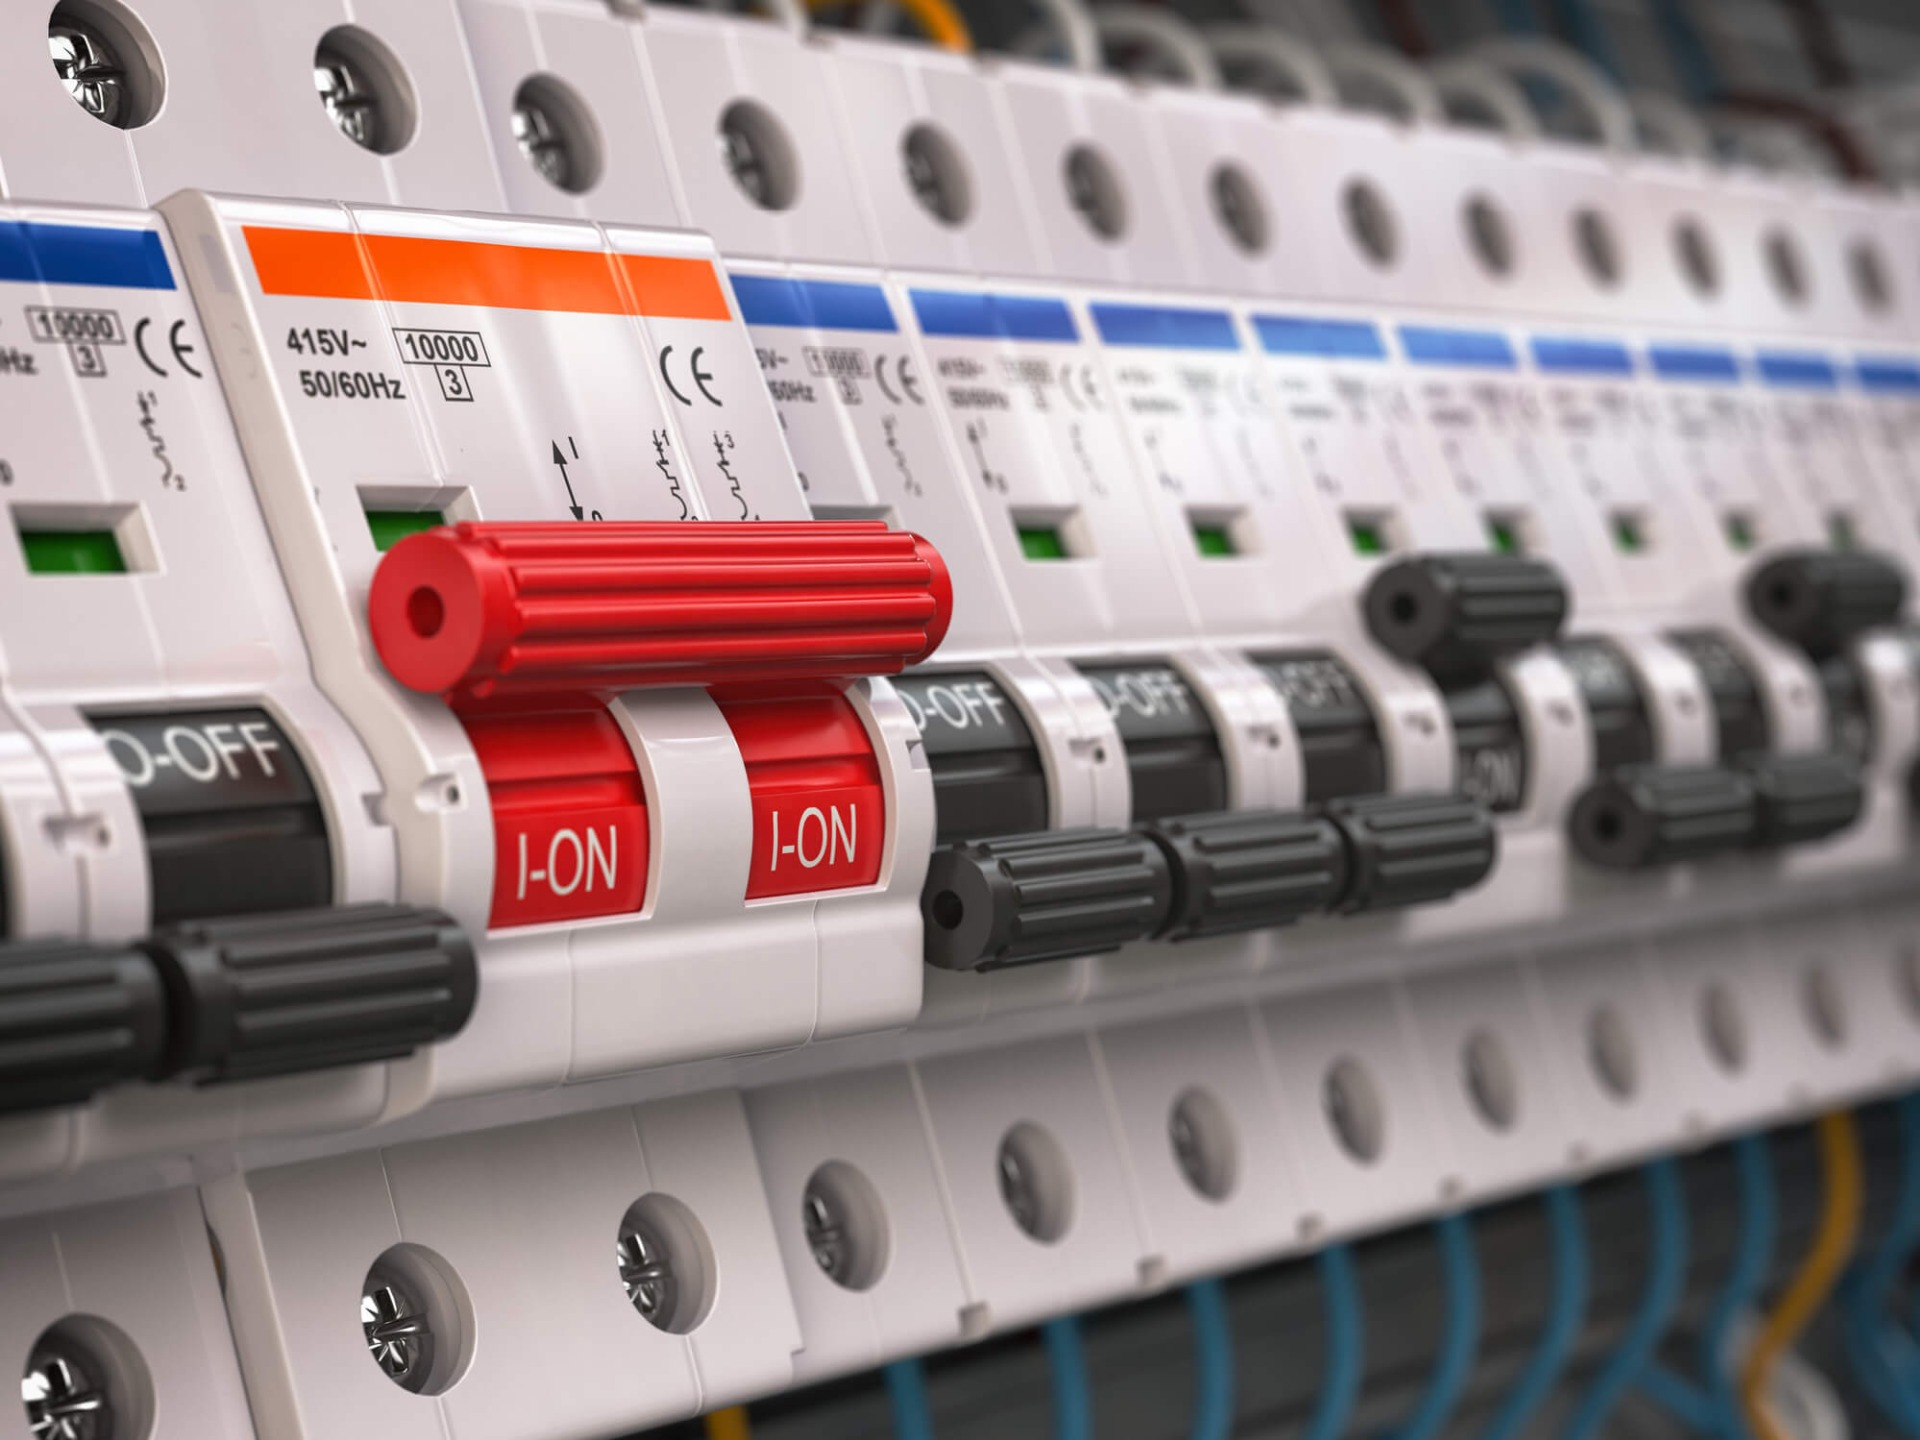 Fuse Box Regulations Rental Property : Msw electrical commercial and domestic electrician hull